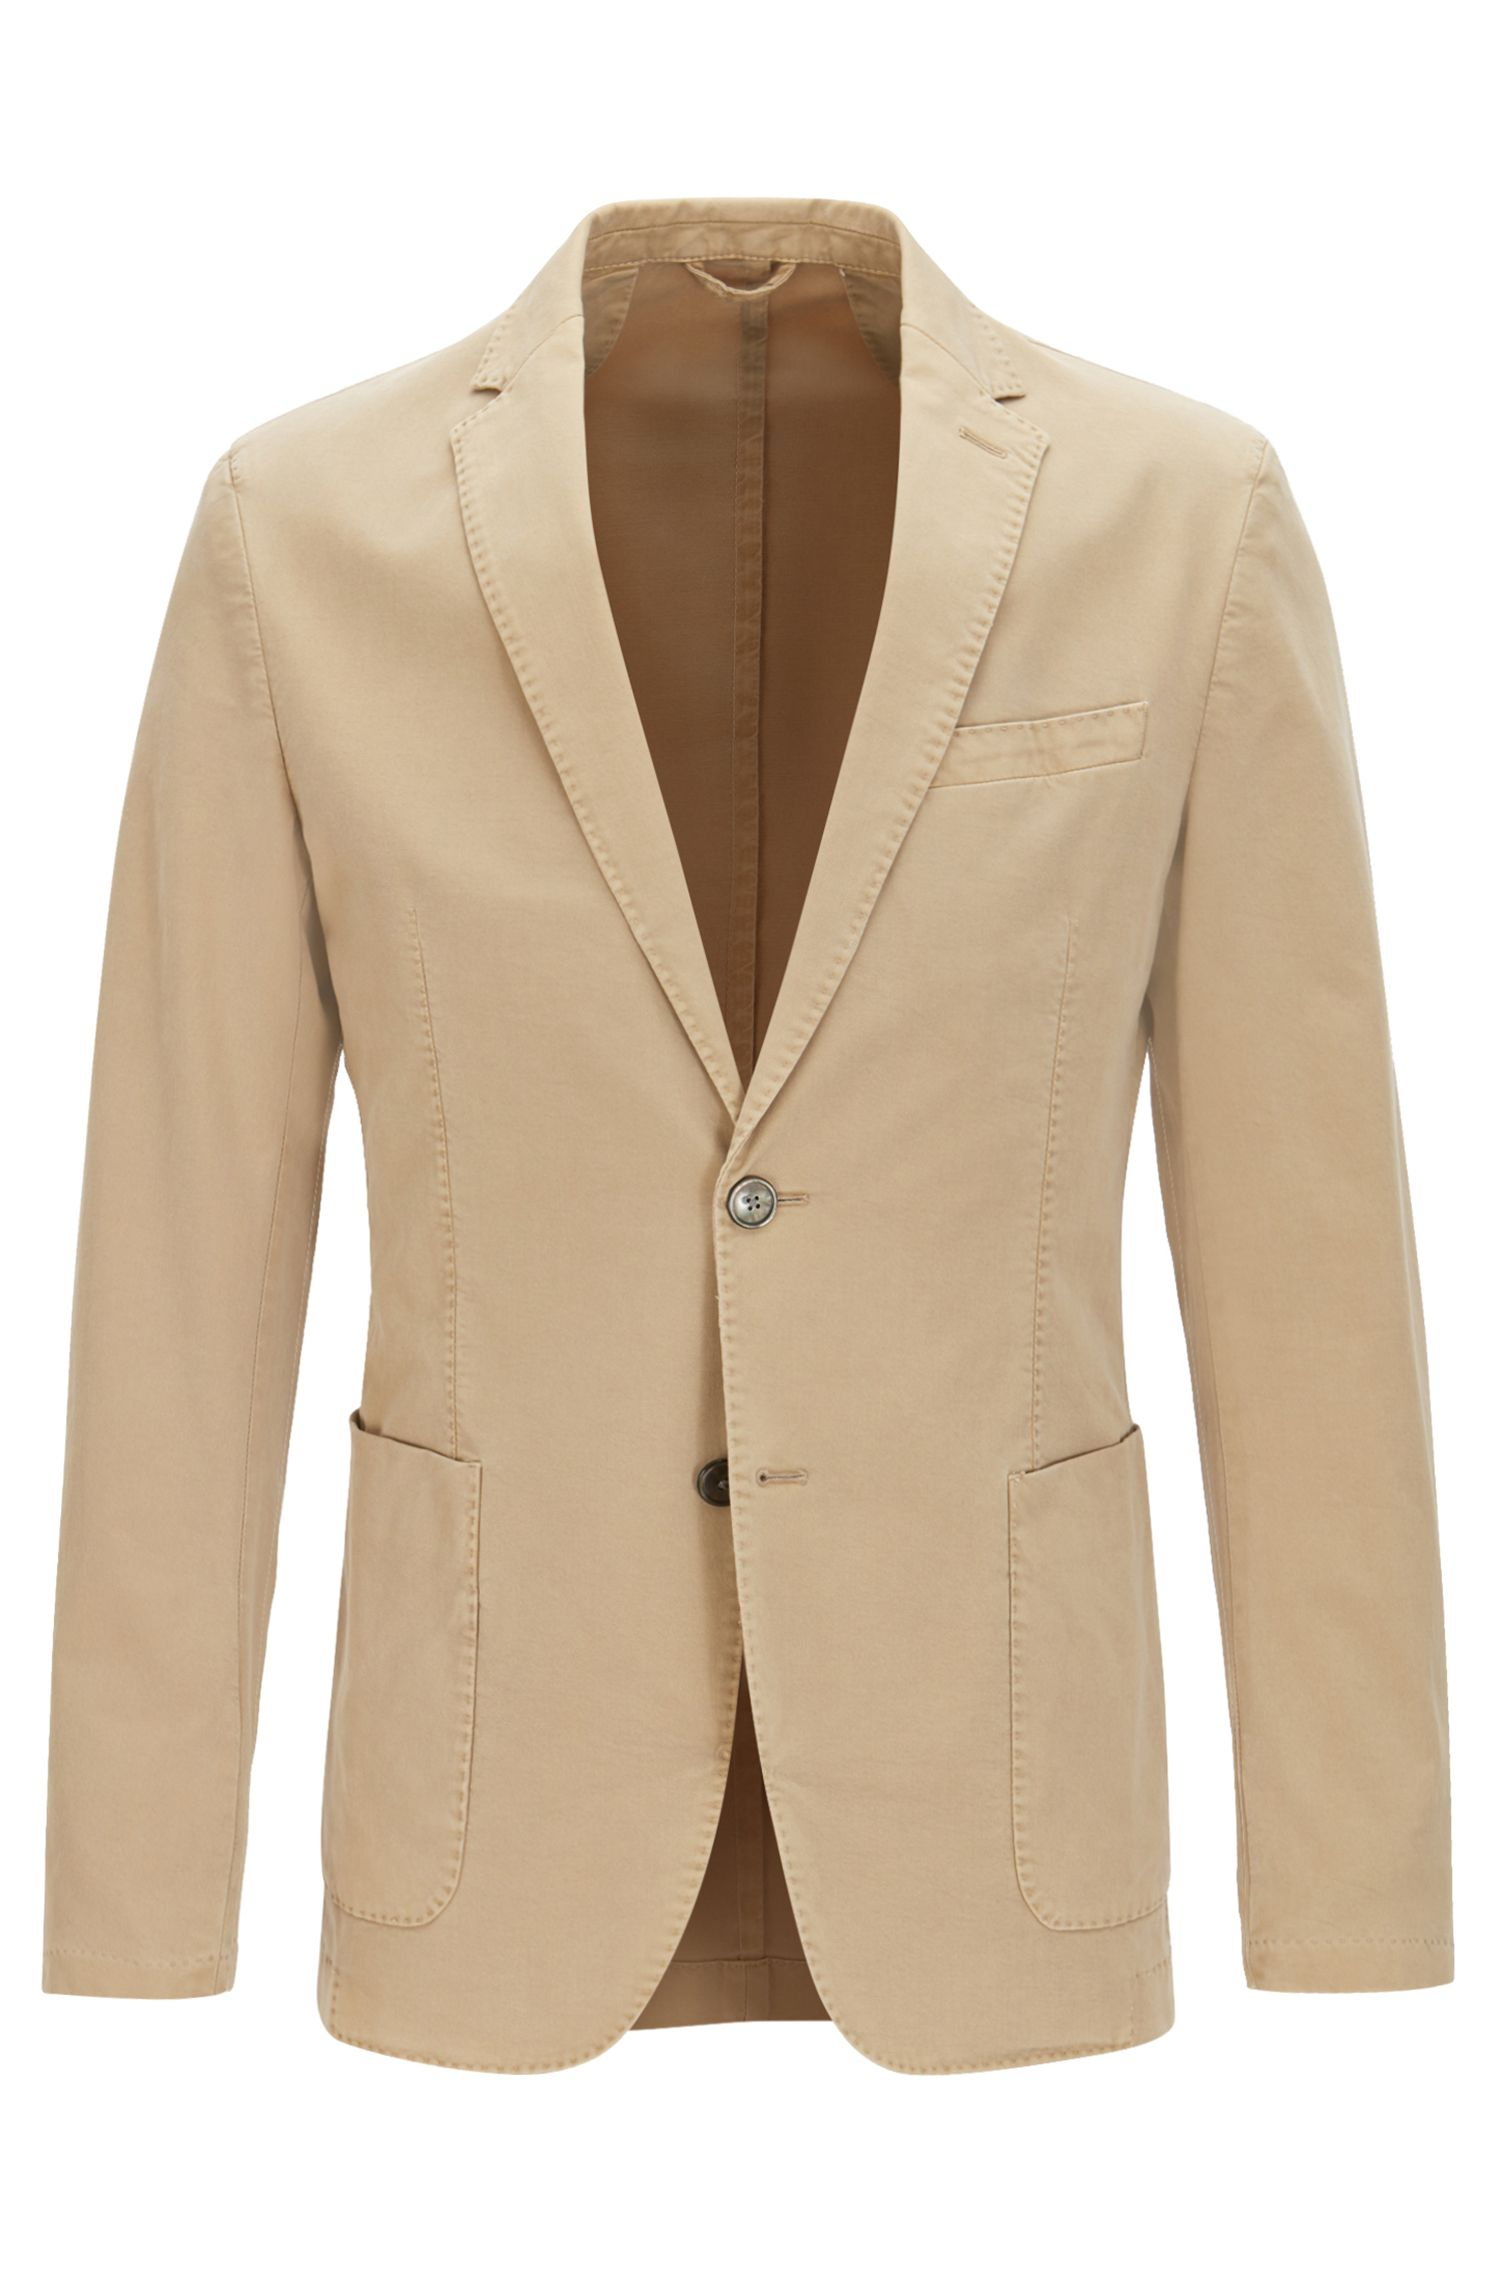 Garment-Dyed Stretch Cotton Sport Coat, Slim Fit | Hanry D, Beige